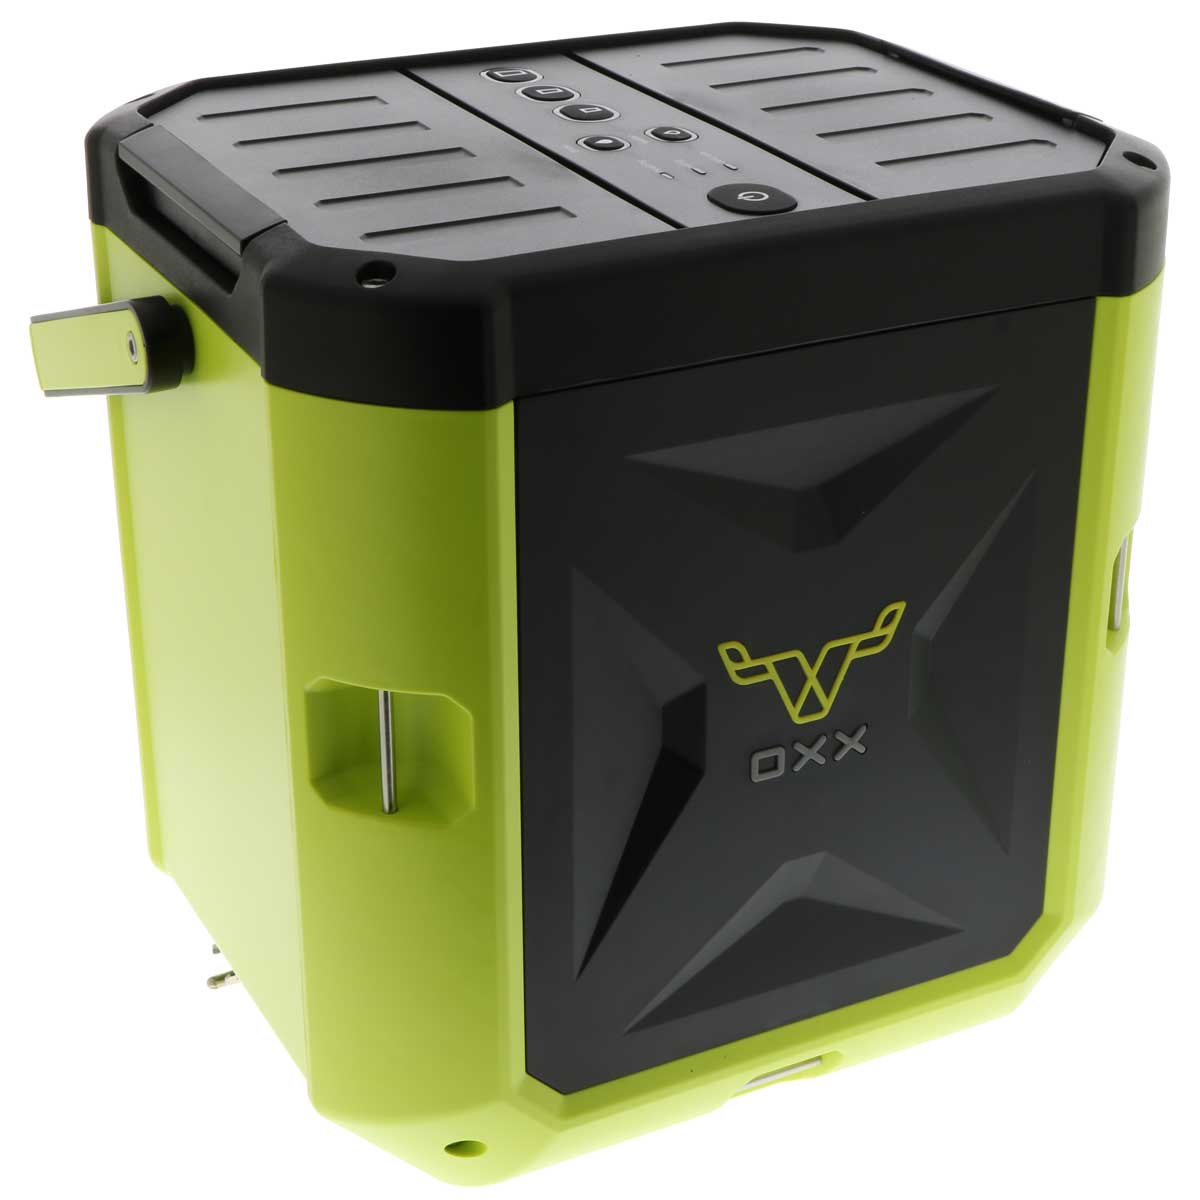 OXX COFFEEBOXX Job Site Coffee Maker